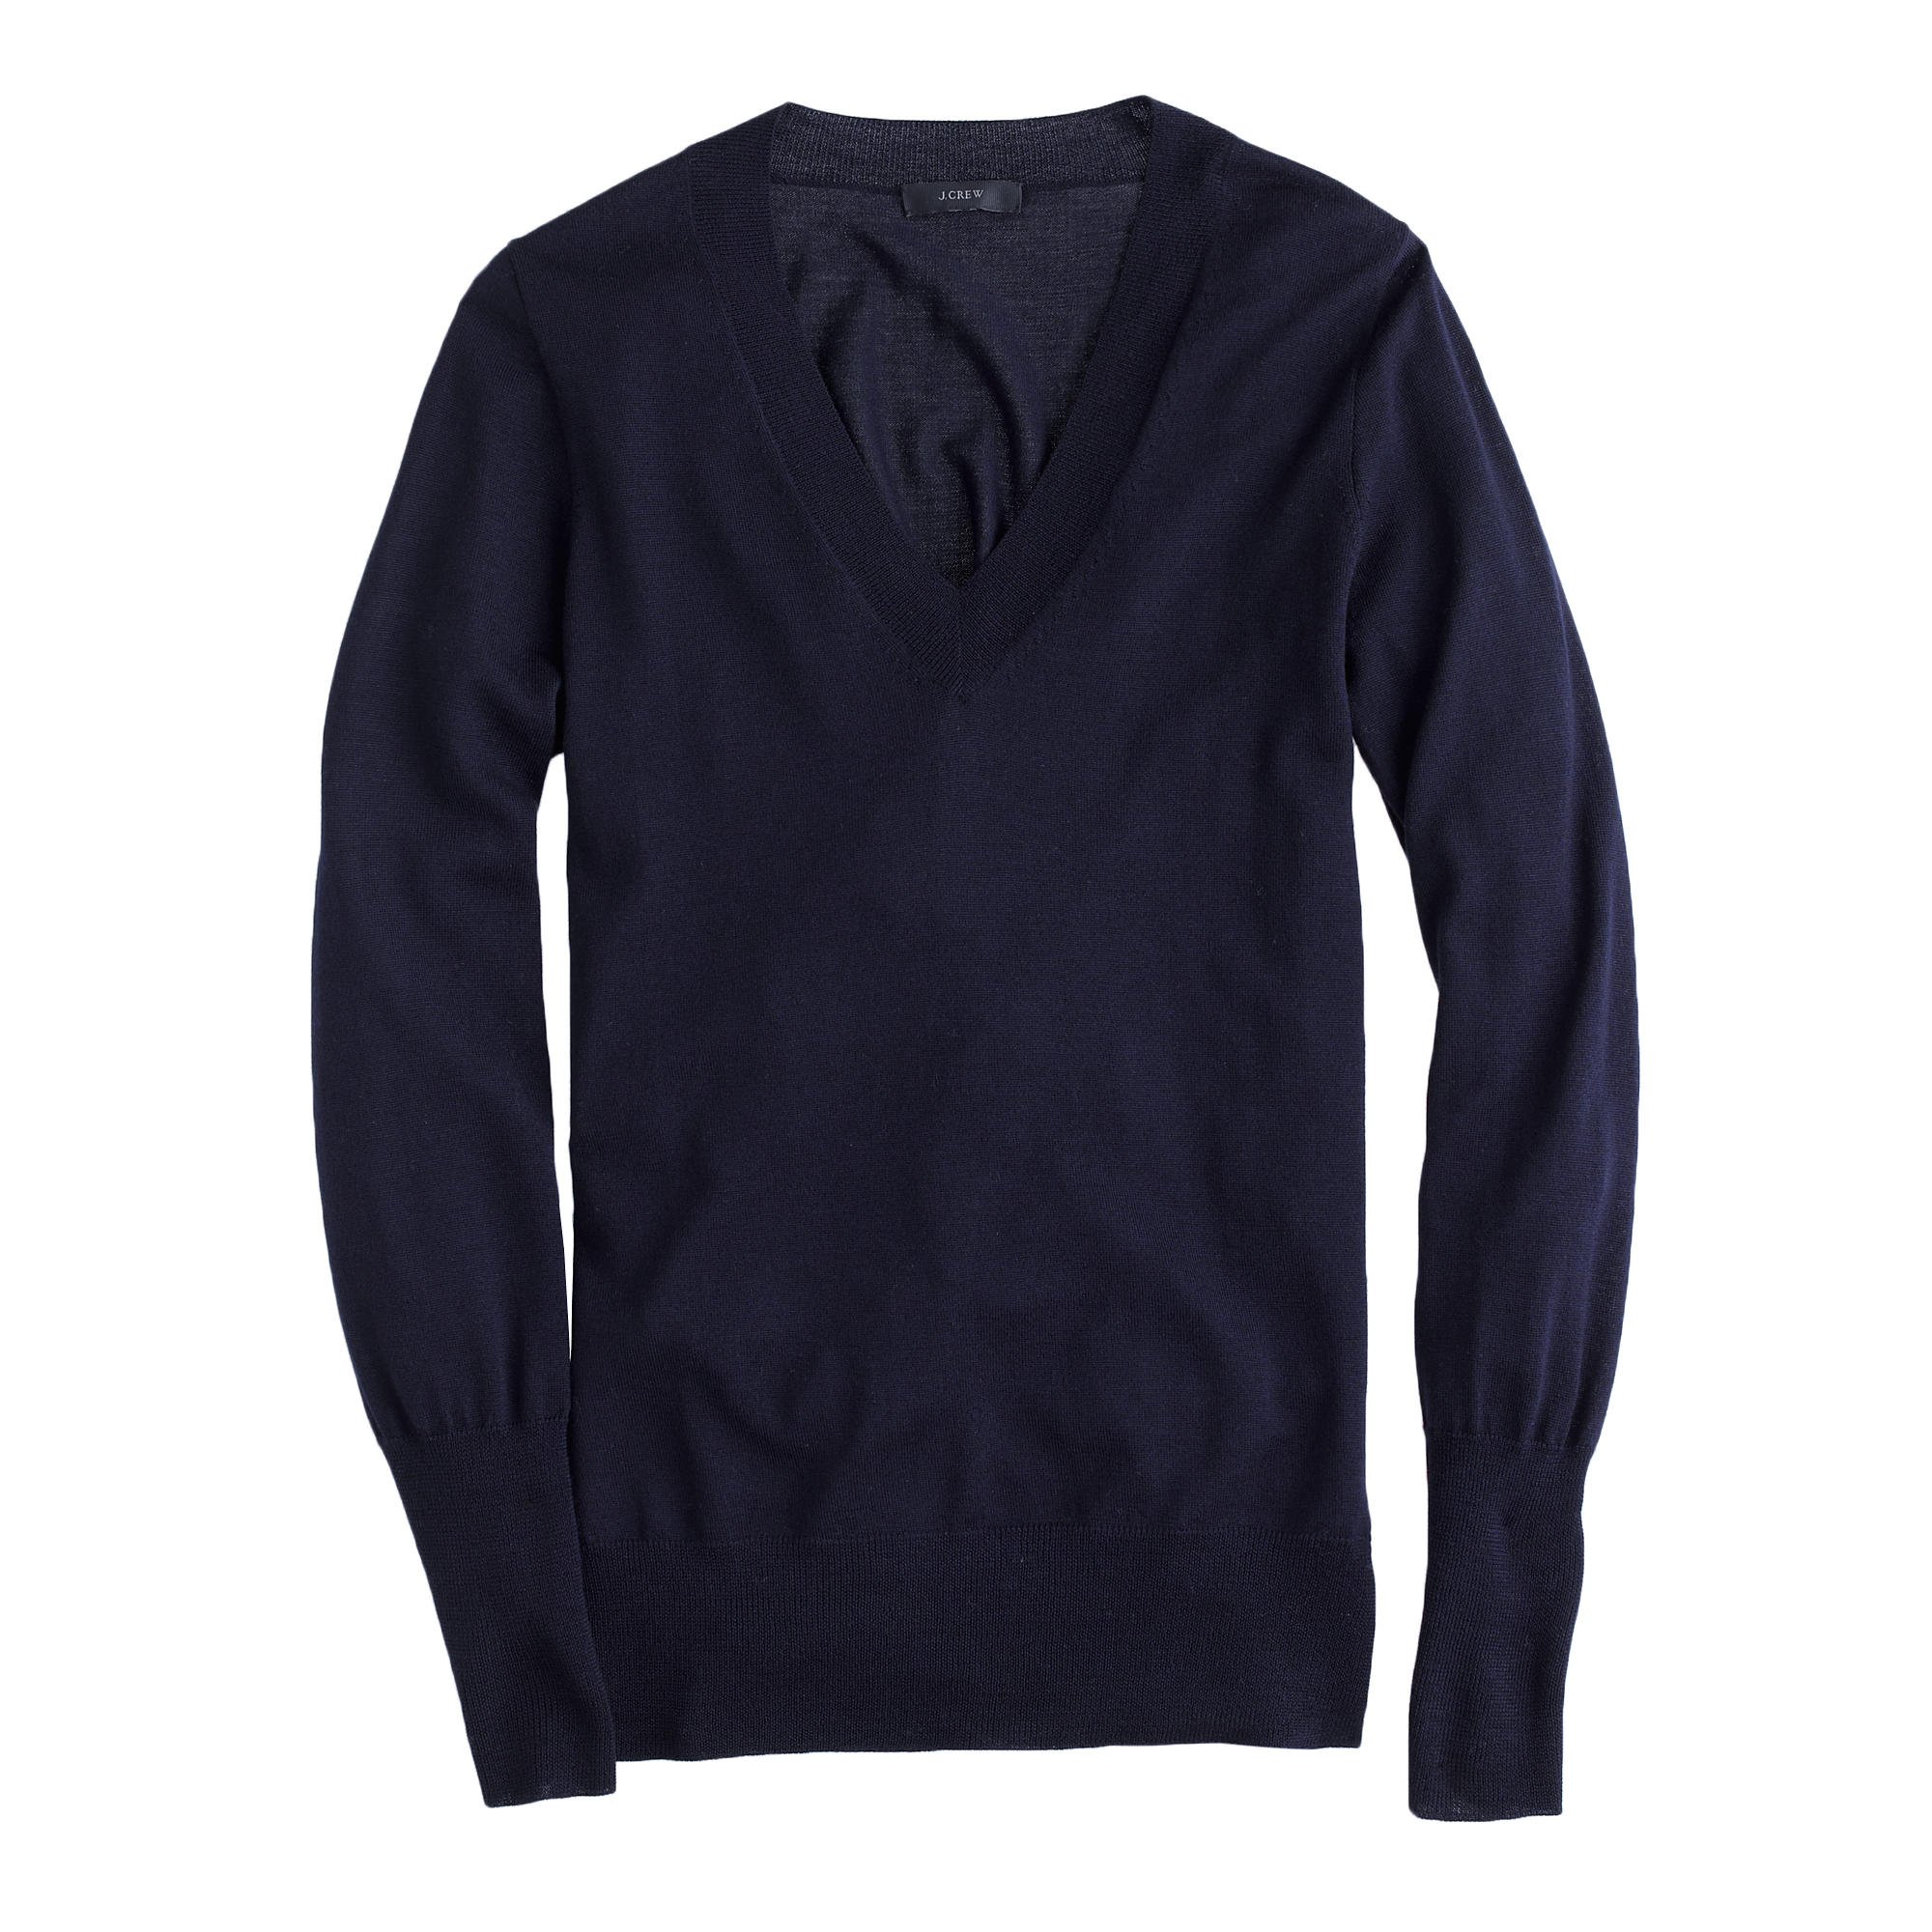 Shop the Merino Wool V-Neck Sweater at truexfilepv.cf and see our entire selection of Women's Sweaters.